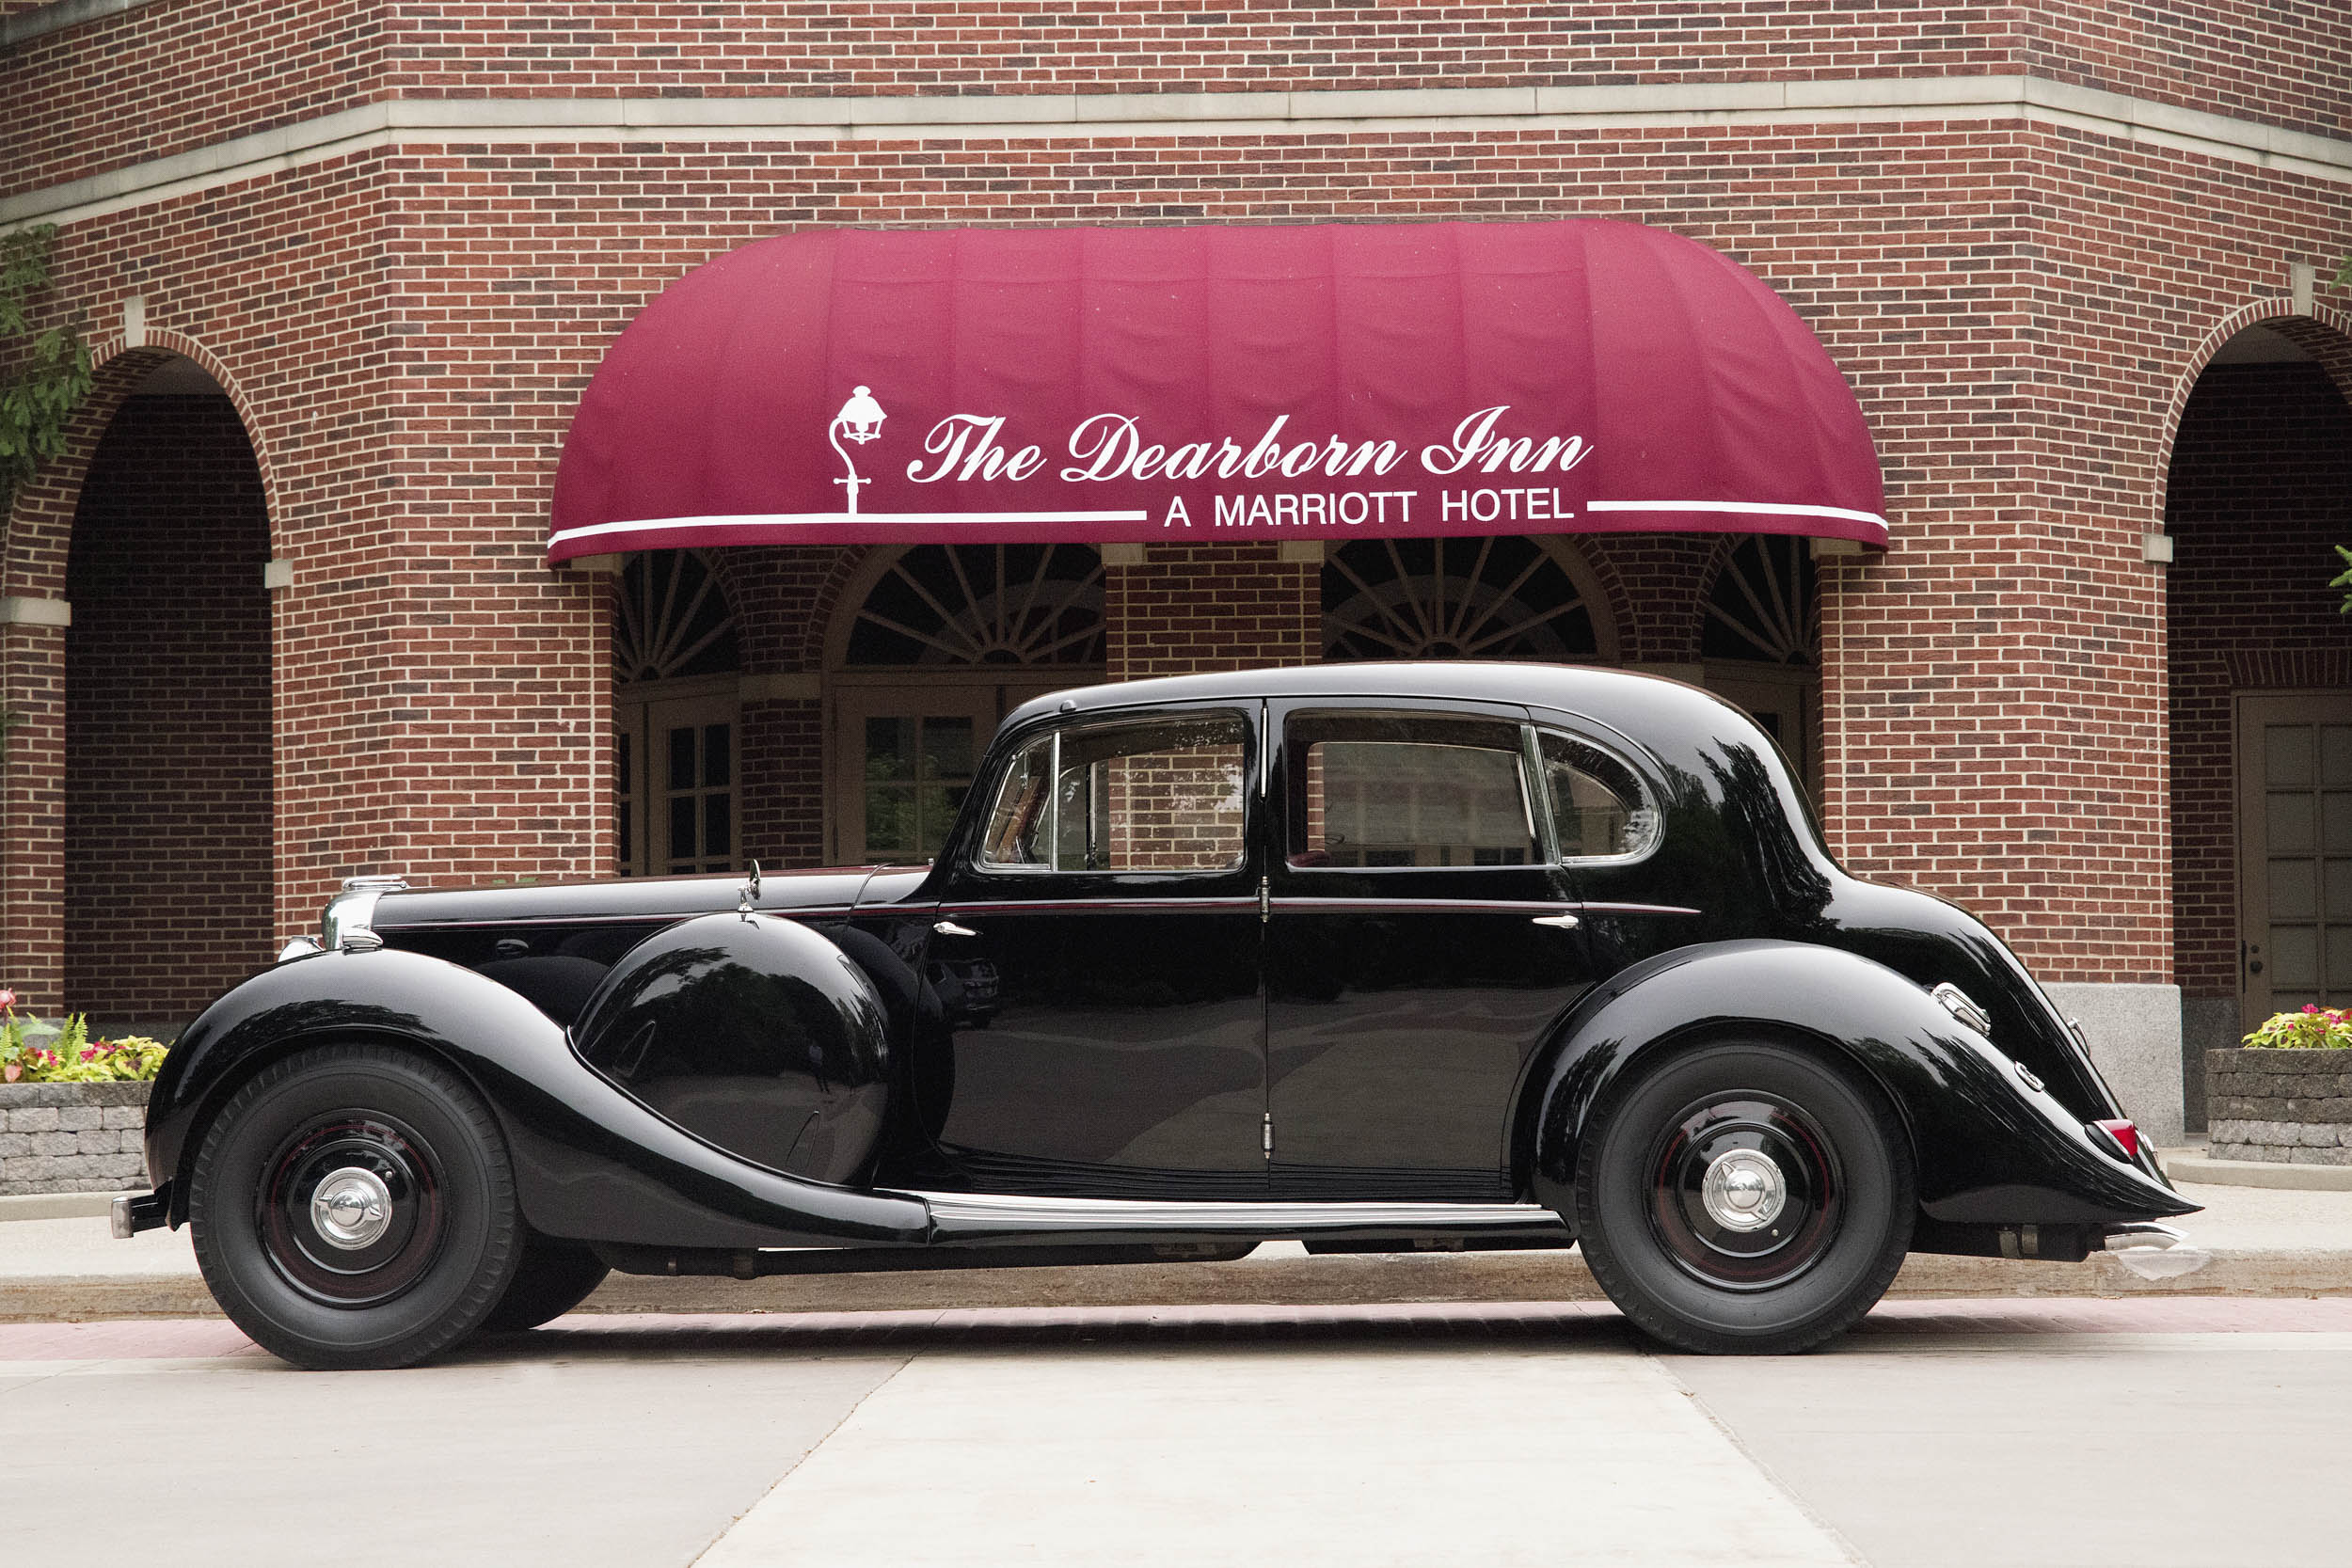 The Lagonda was photographed at the Dearborn Inn in Michigan. The hotel is an integral part of Ford Motor Company history, so it may seem an odd choice for an English car. But Dearborn has long been home to the Dagostino family and their Lagonda.